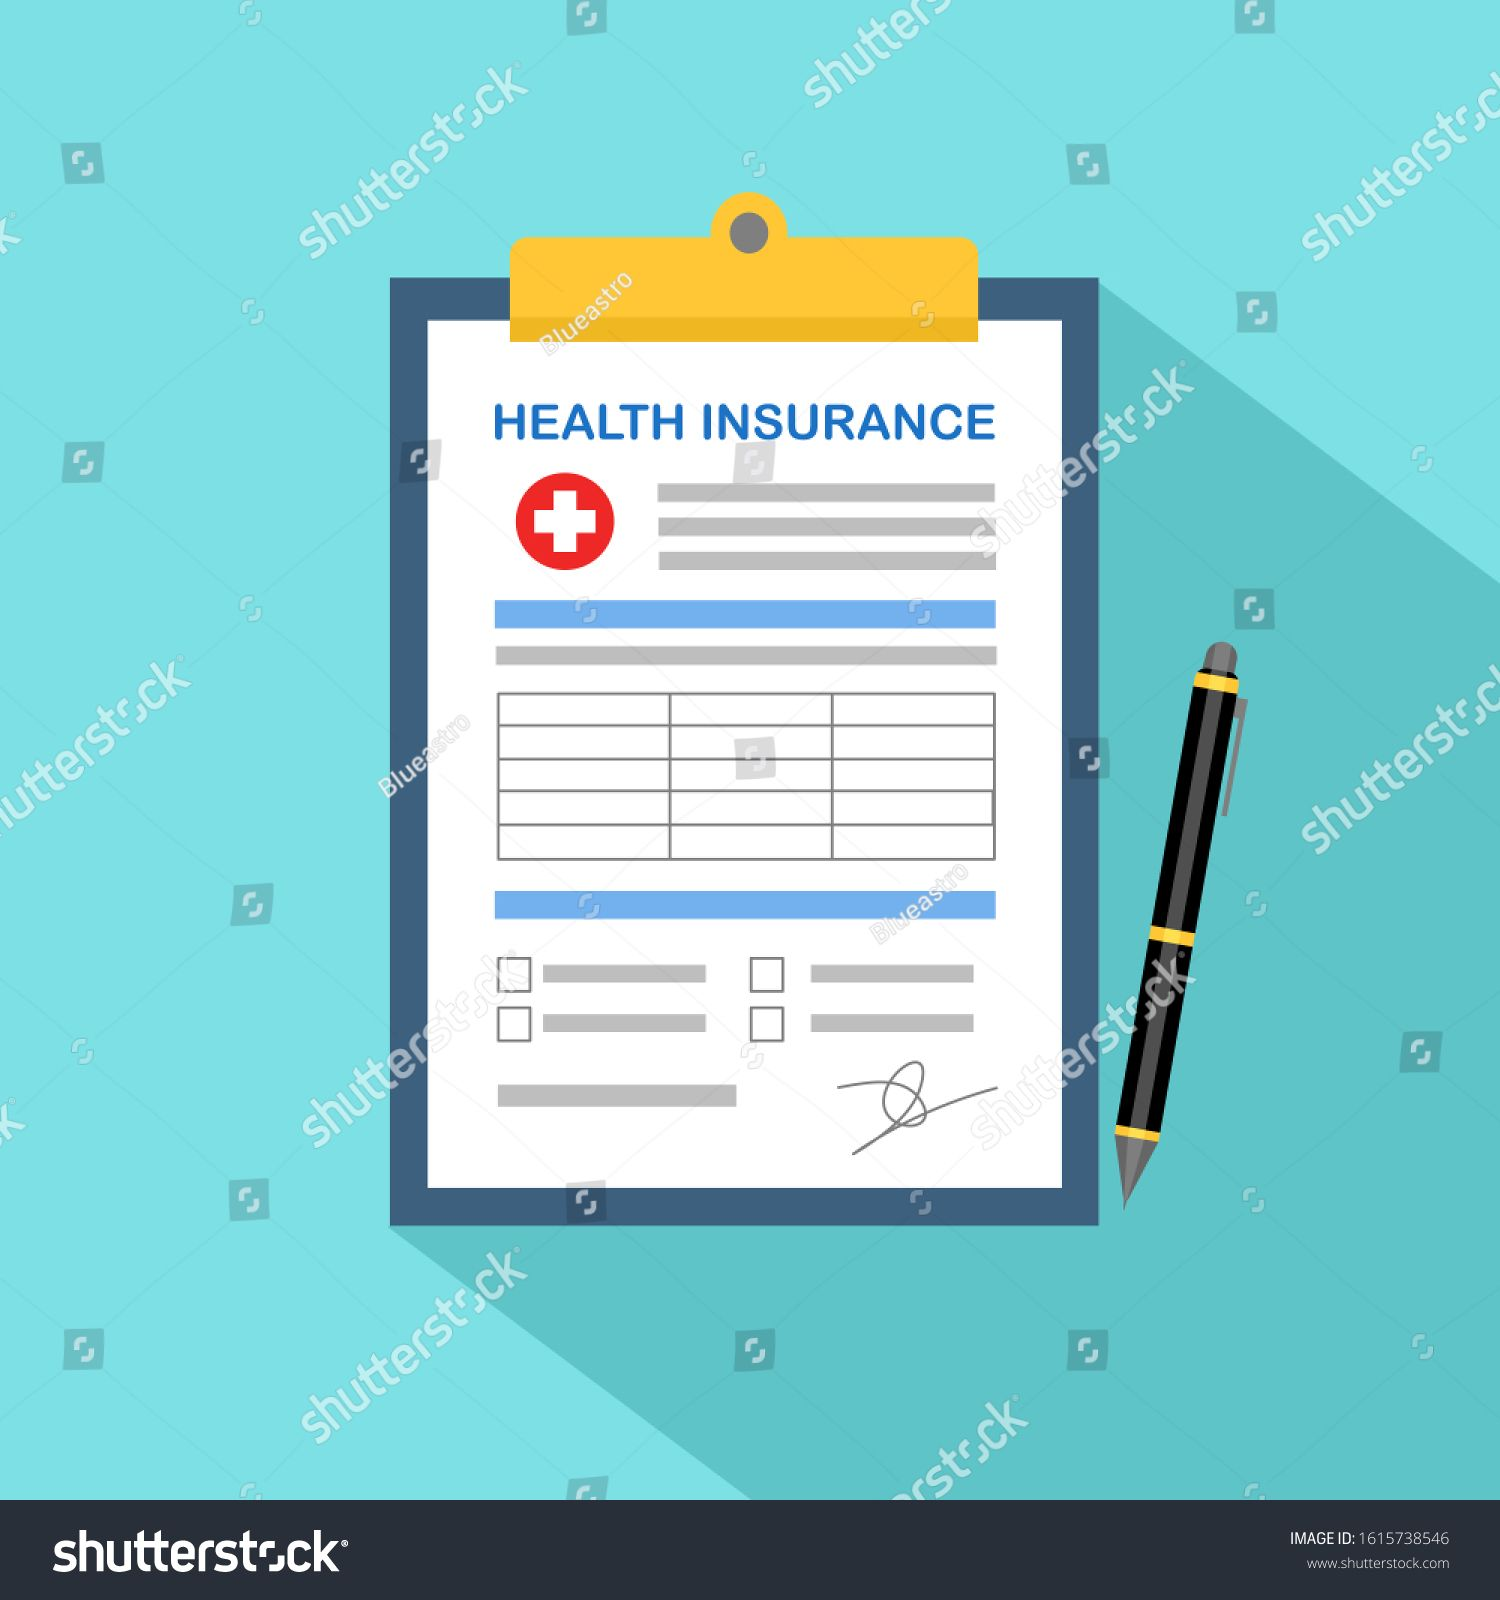 Health Insurance Clipboard With Medical Cross And Pen Health